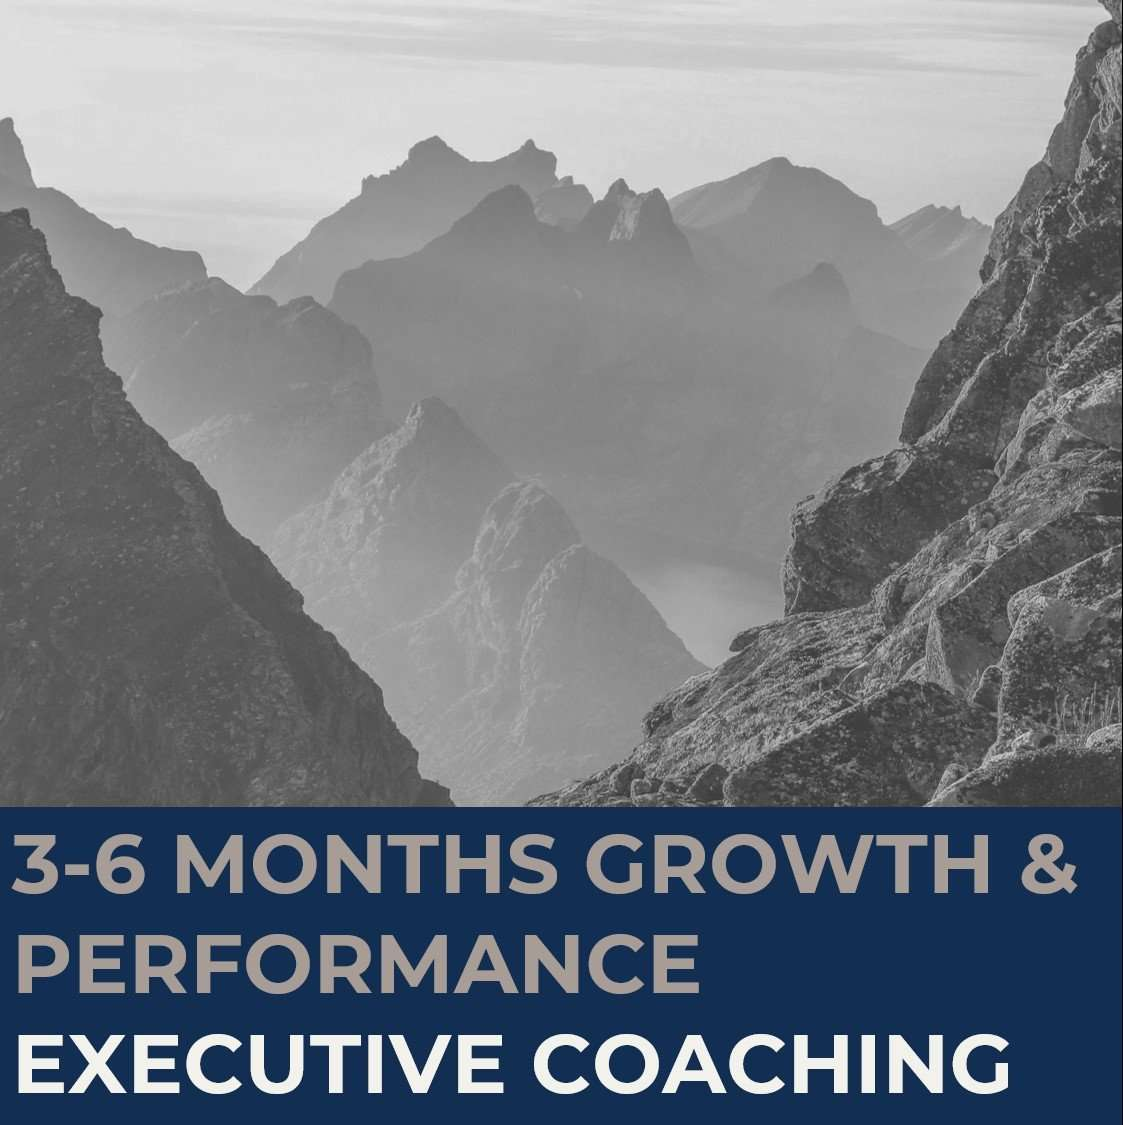 STRATZR.com Executive Coaching Programs for Growth & Performance